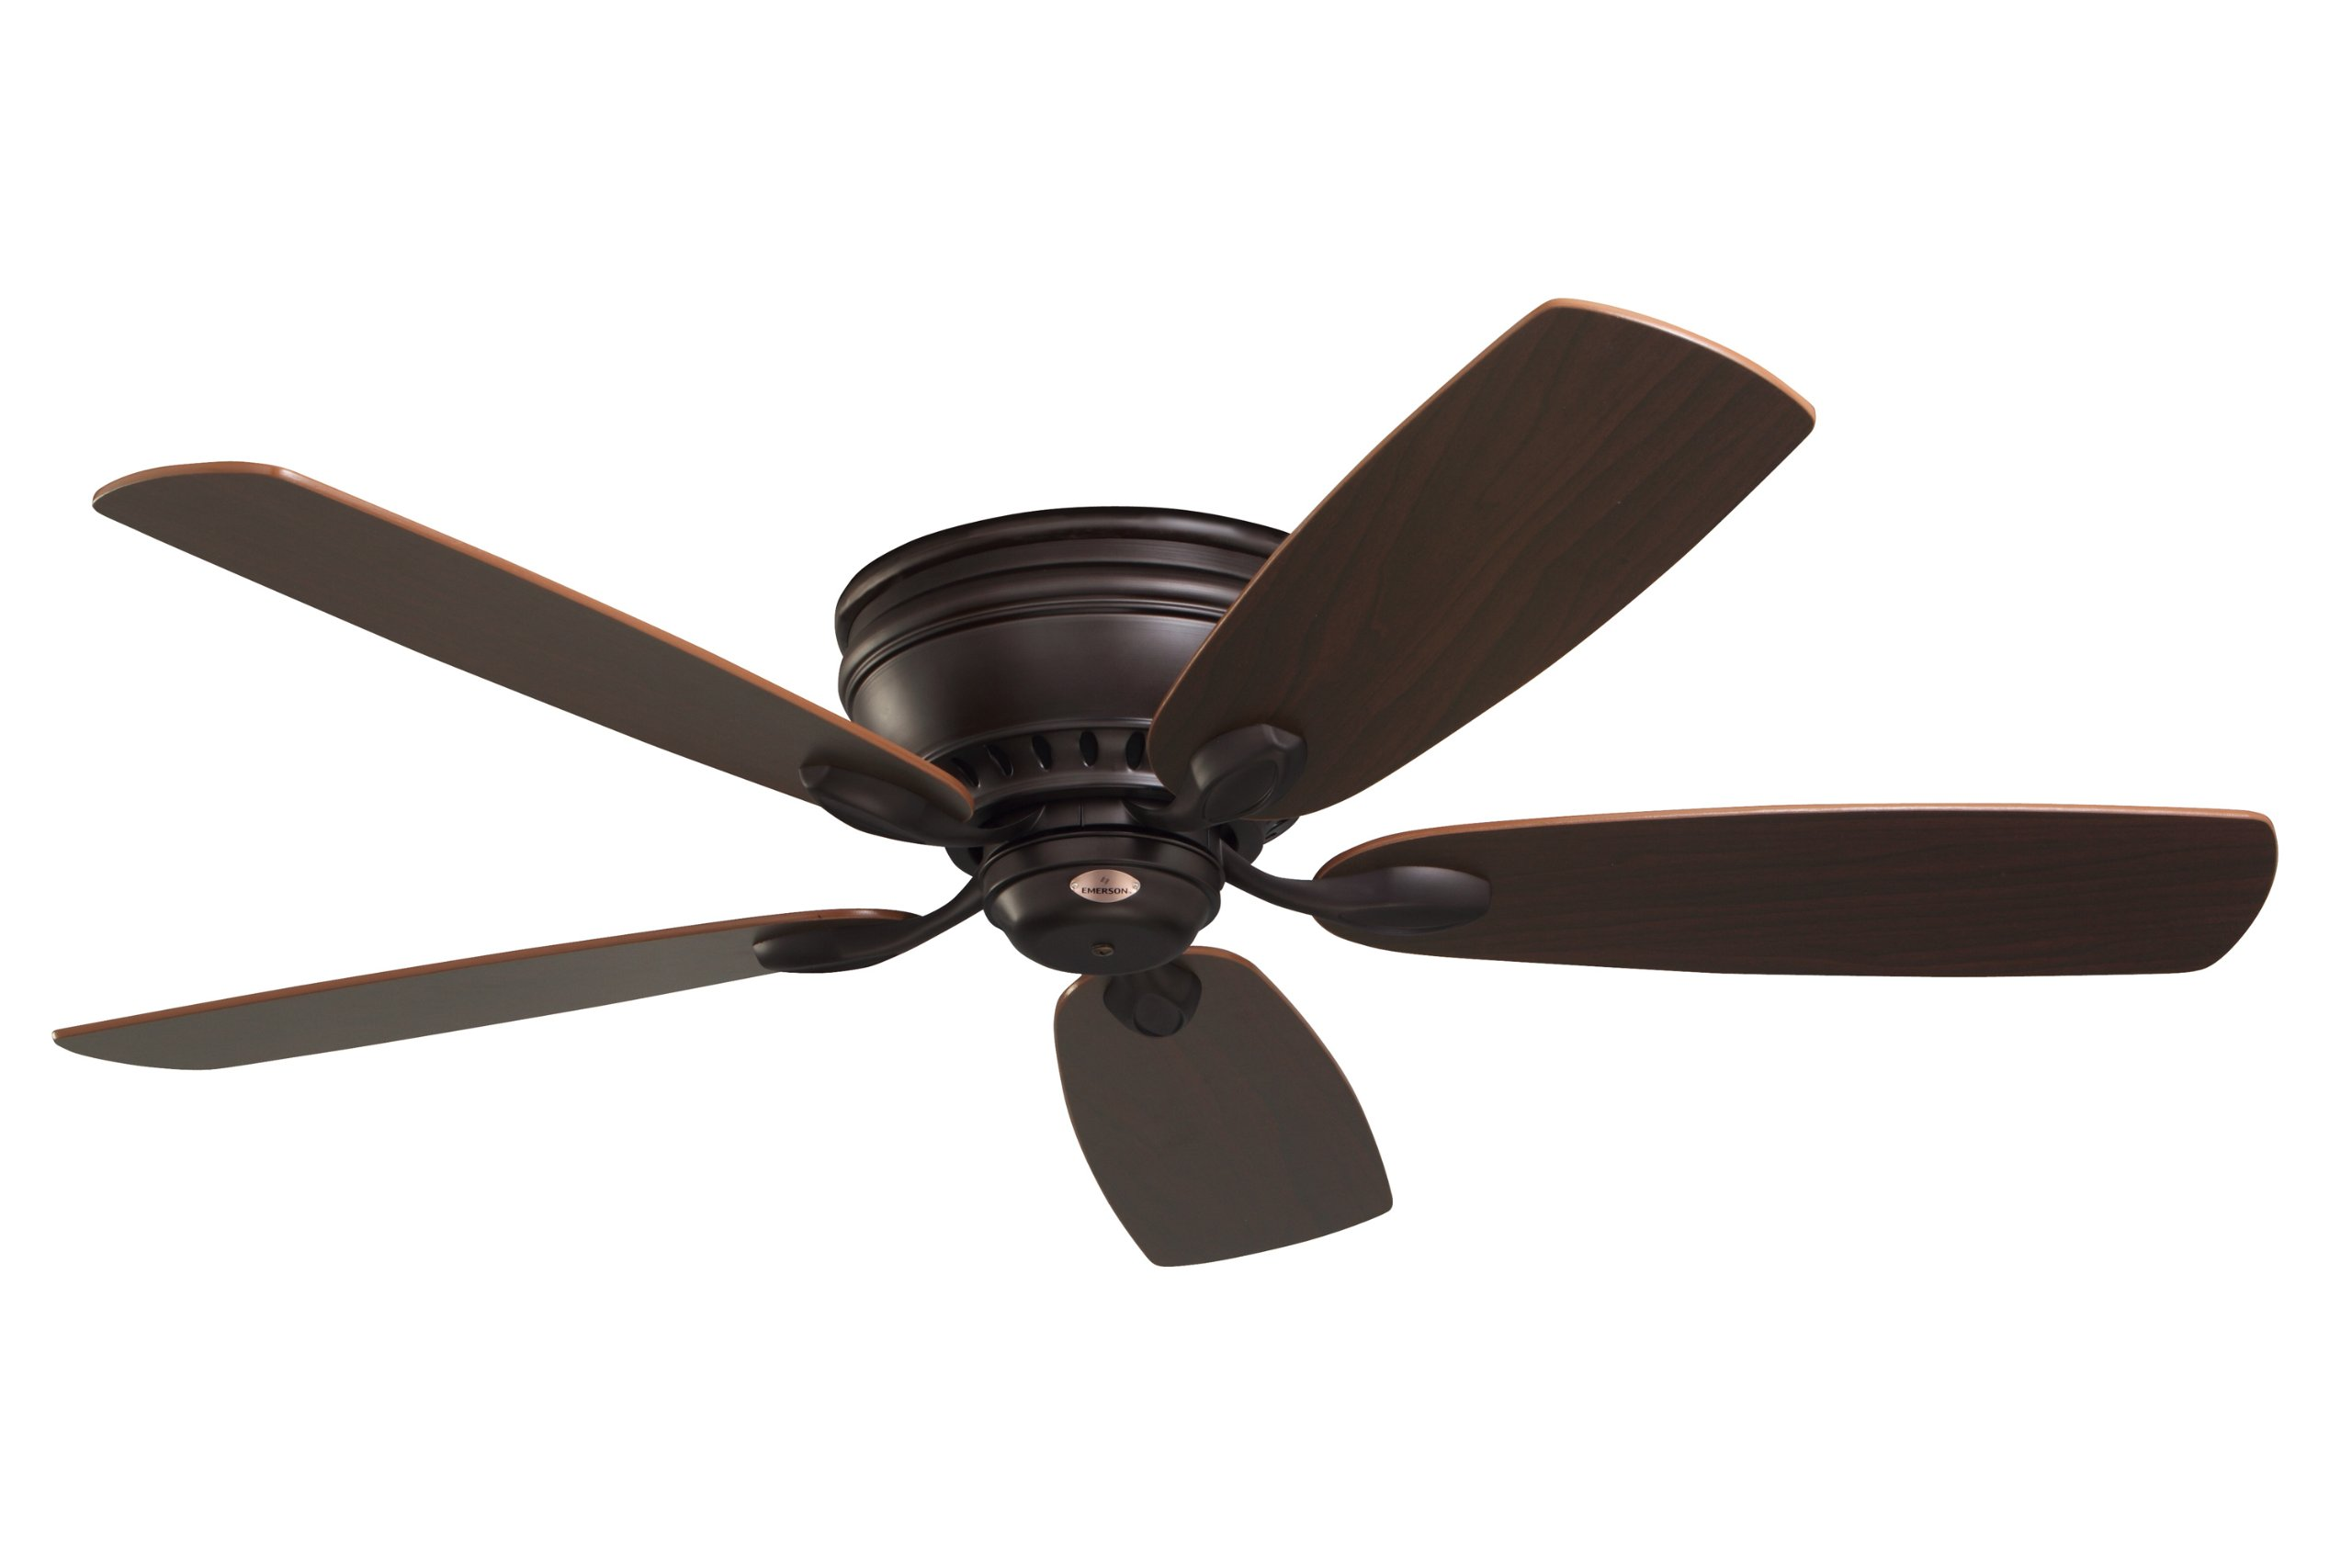 Emerson Ceiling Fans CF905ORB Prima Snugger 52-Inch Low Profile Ceiling Fan With Wall Control, Light Kit Adaptable, Oil Rubbed Bronze Finish by Emerson